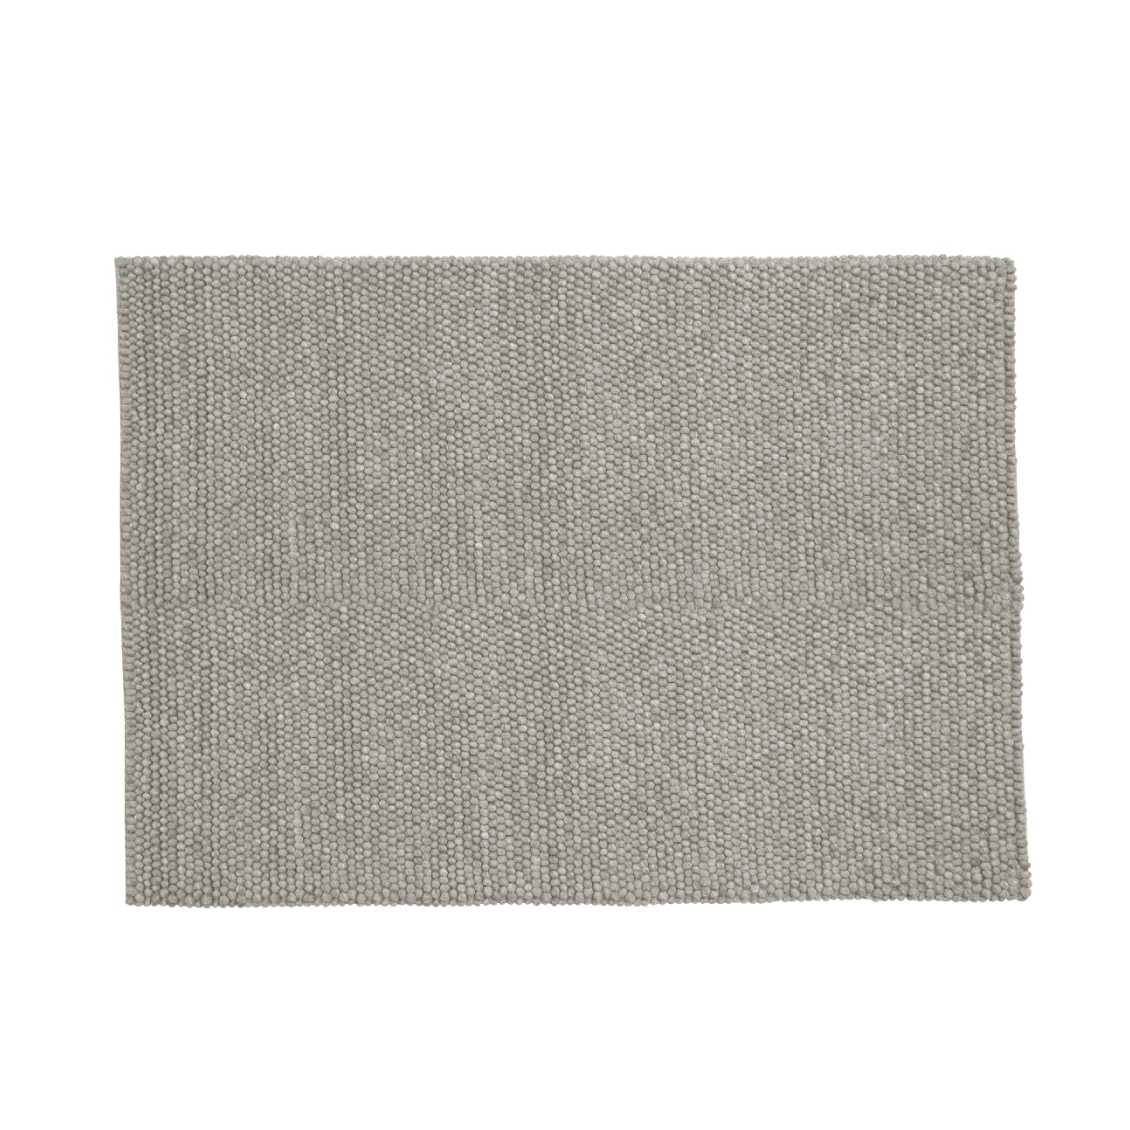 HAY Peas Karpet Vloerkleed 200 x 80 Medium Grey